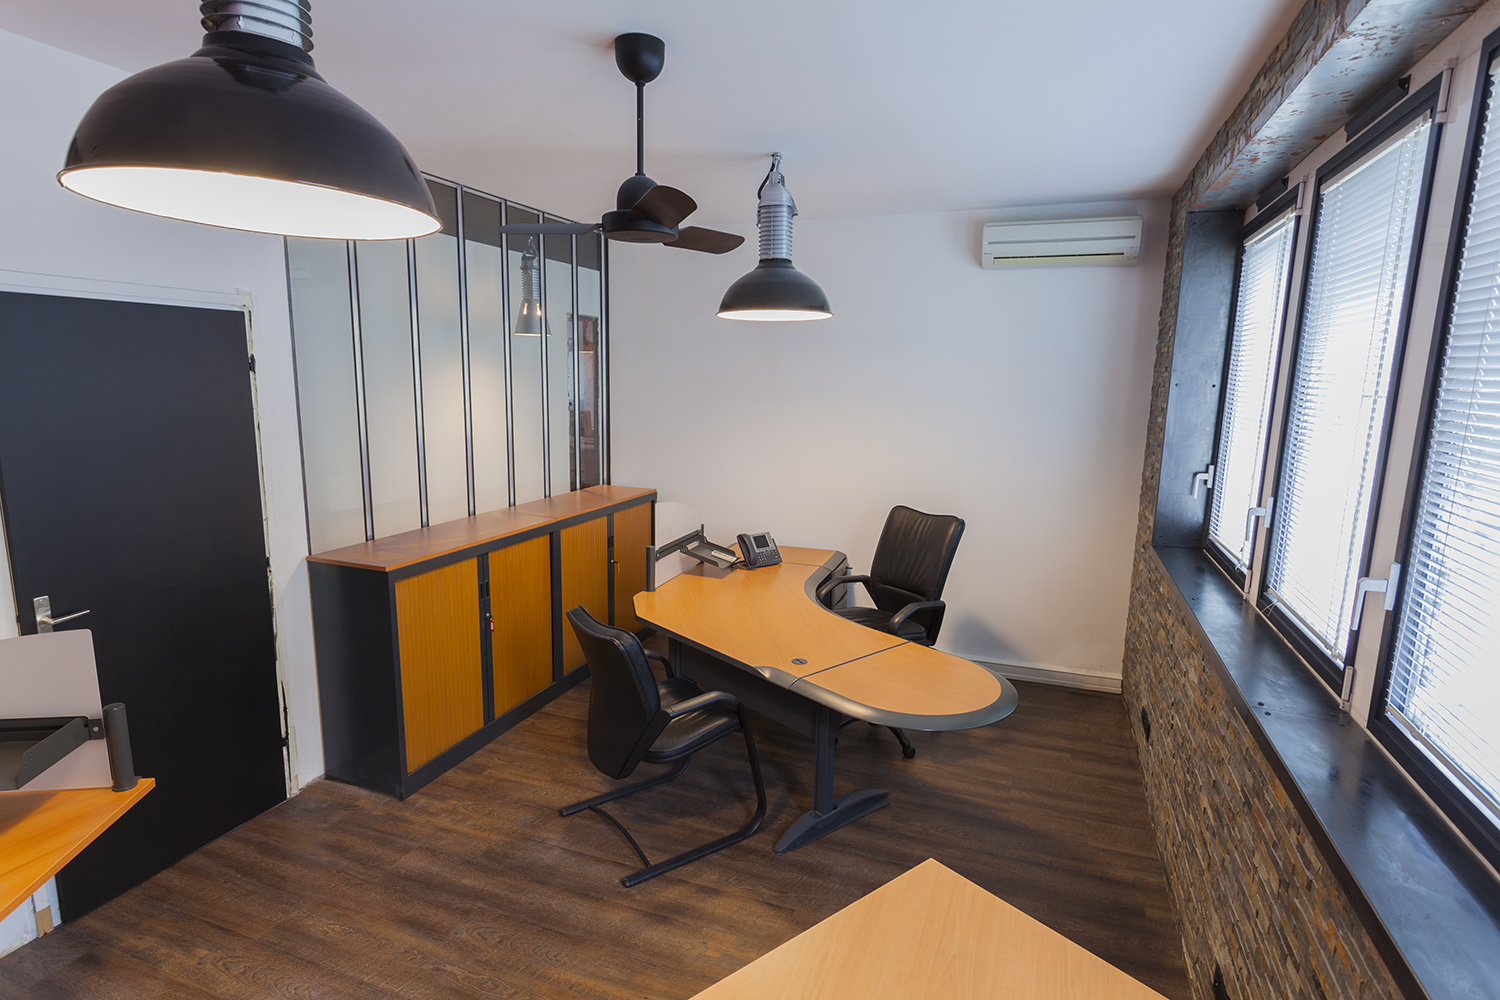 location de bureaux la rochelle centre d 39 affaires bureaux privatifs co working. Black Bedroom Furniture Sets. Home Design Ideas